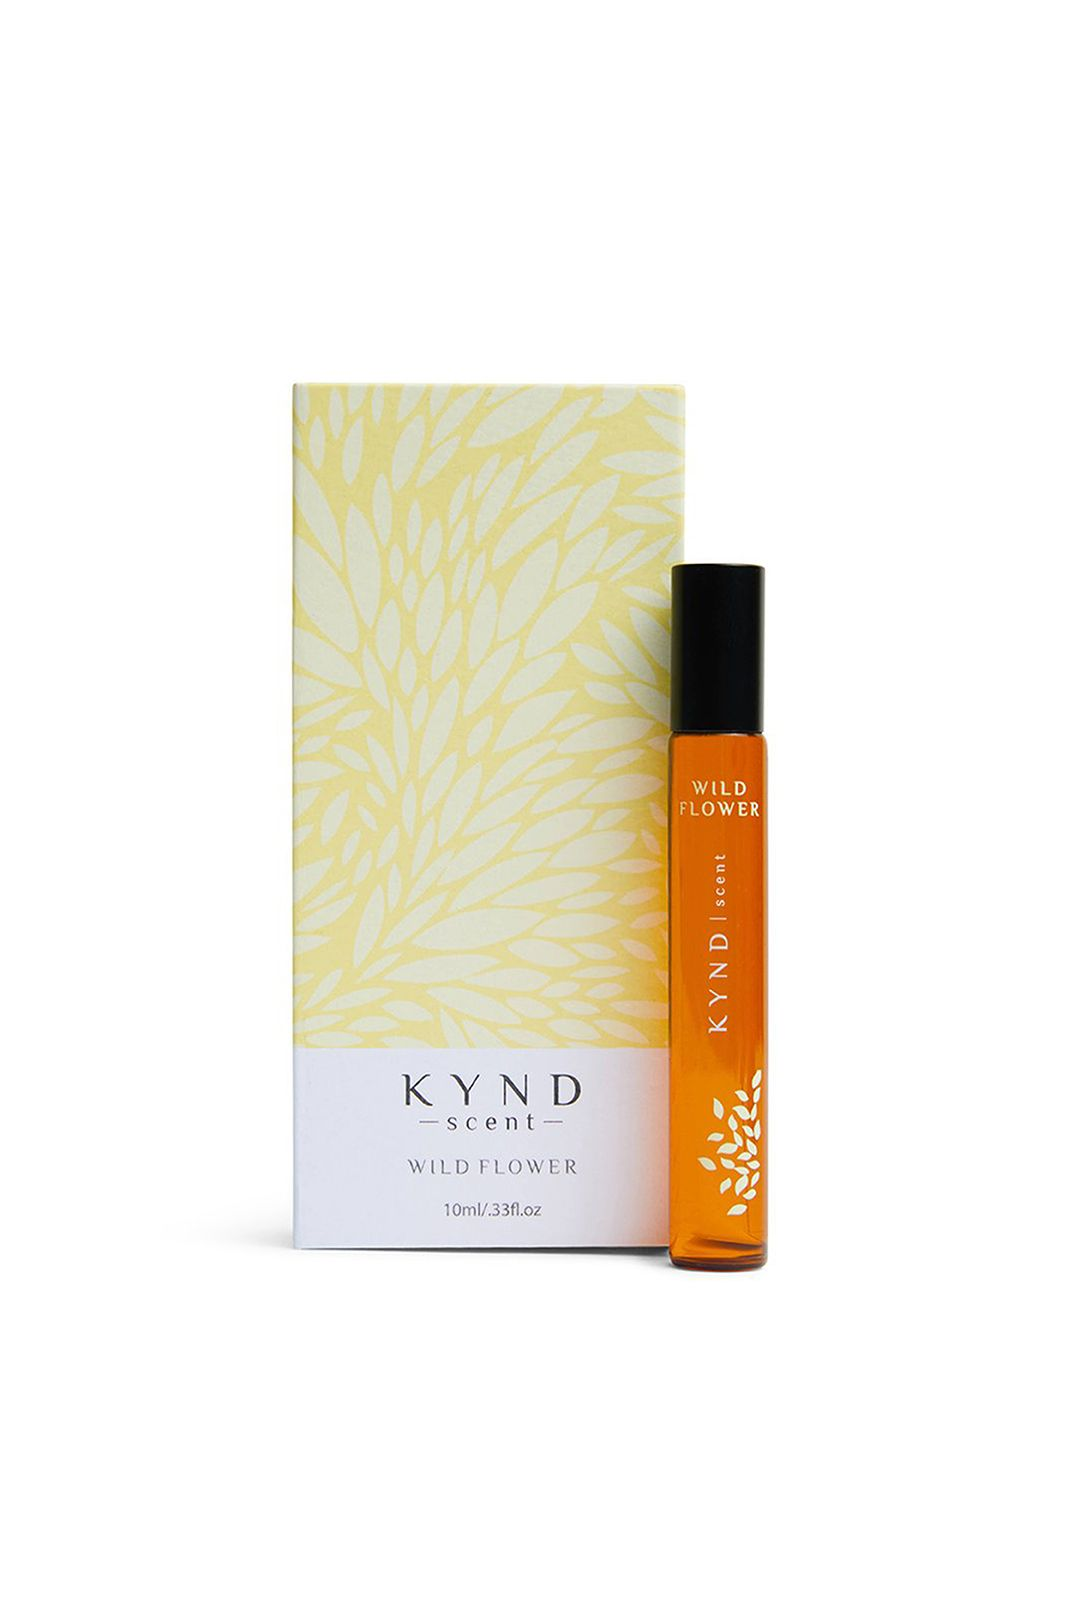 kynd-scent-wild-flower-product-1